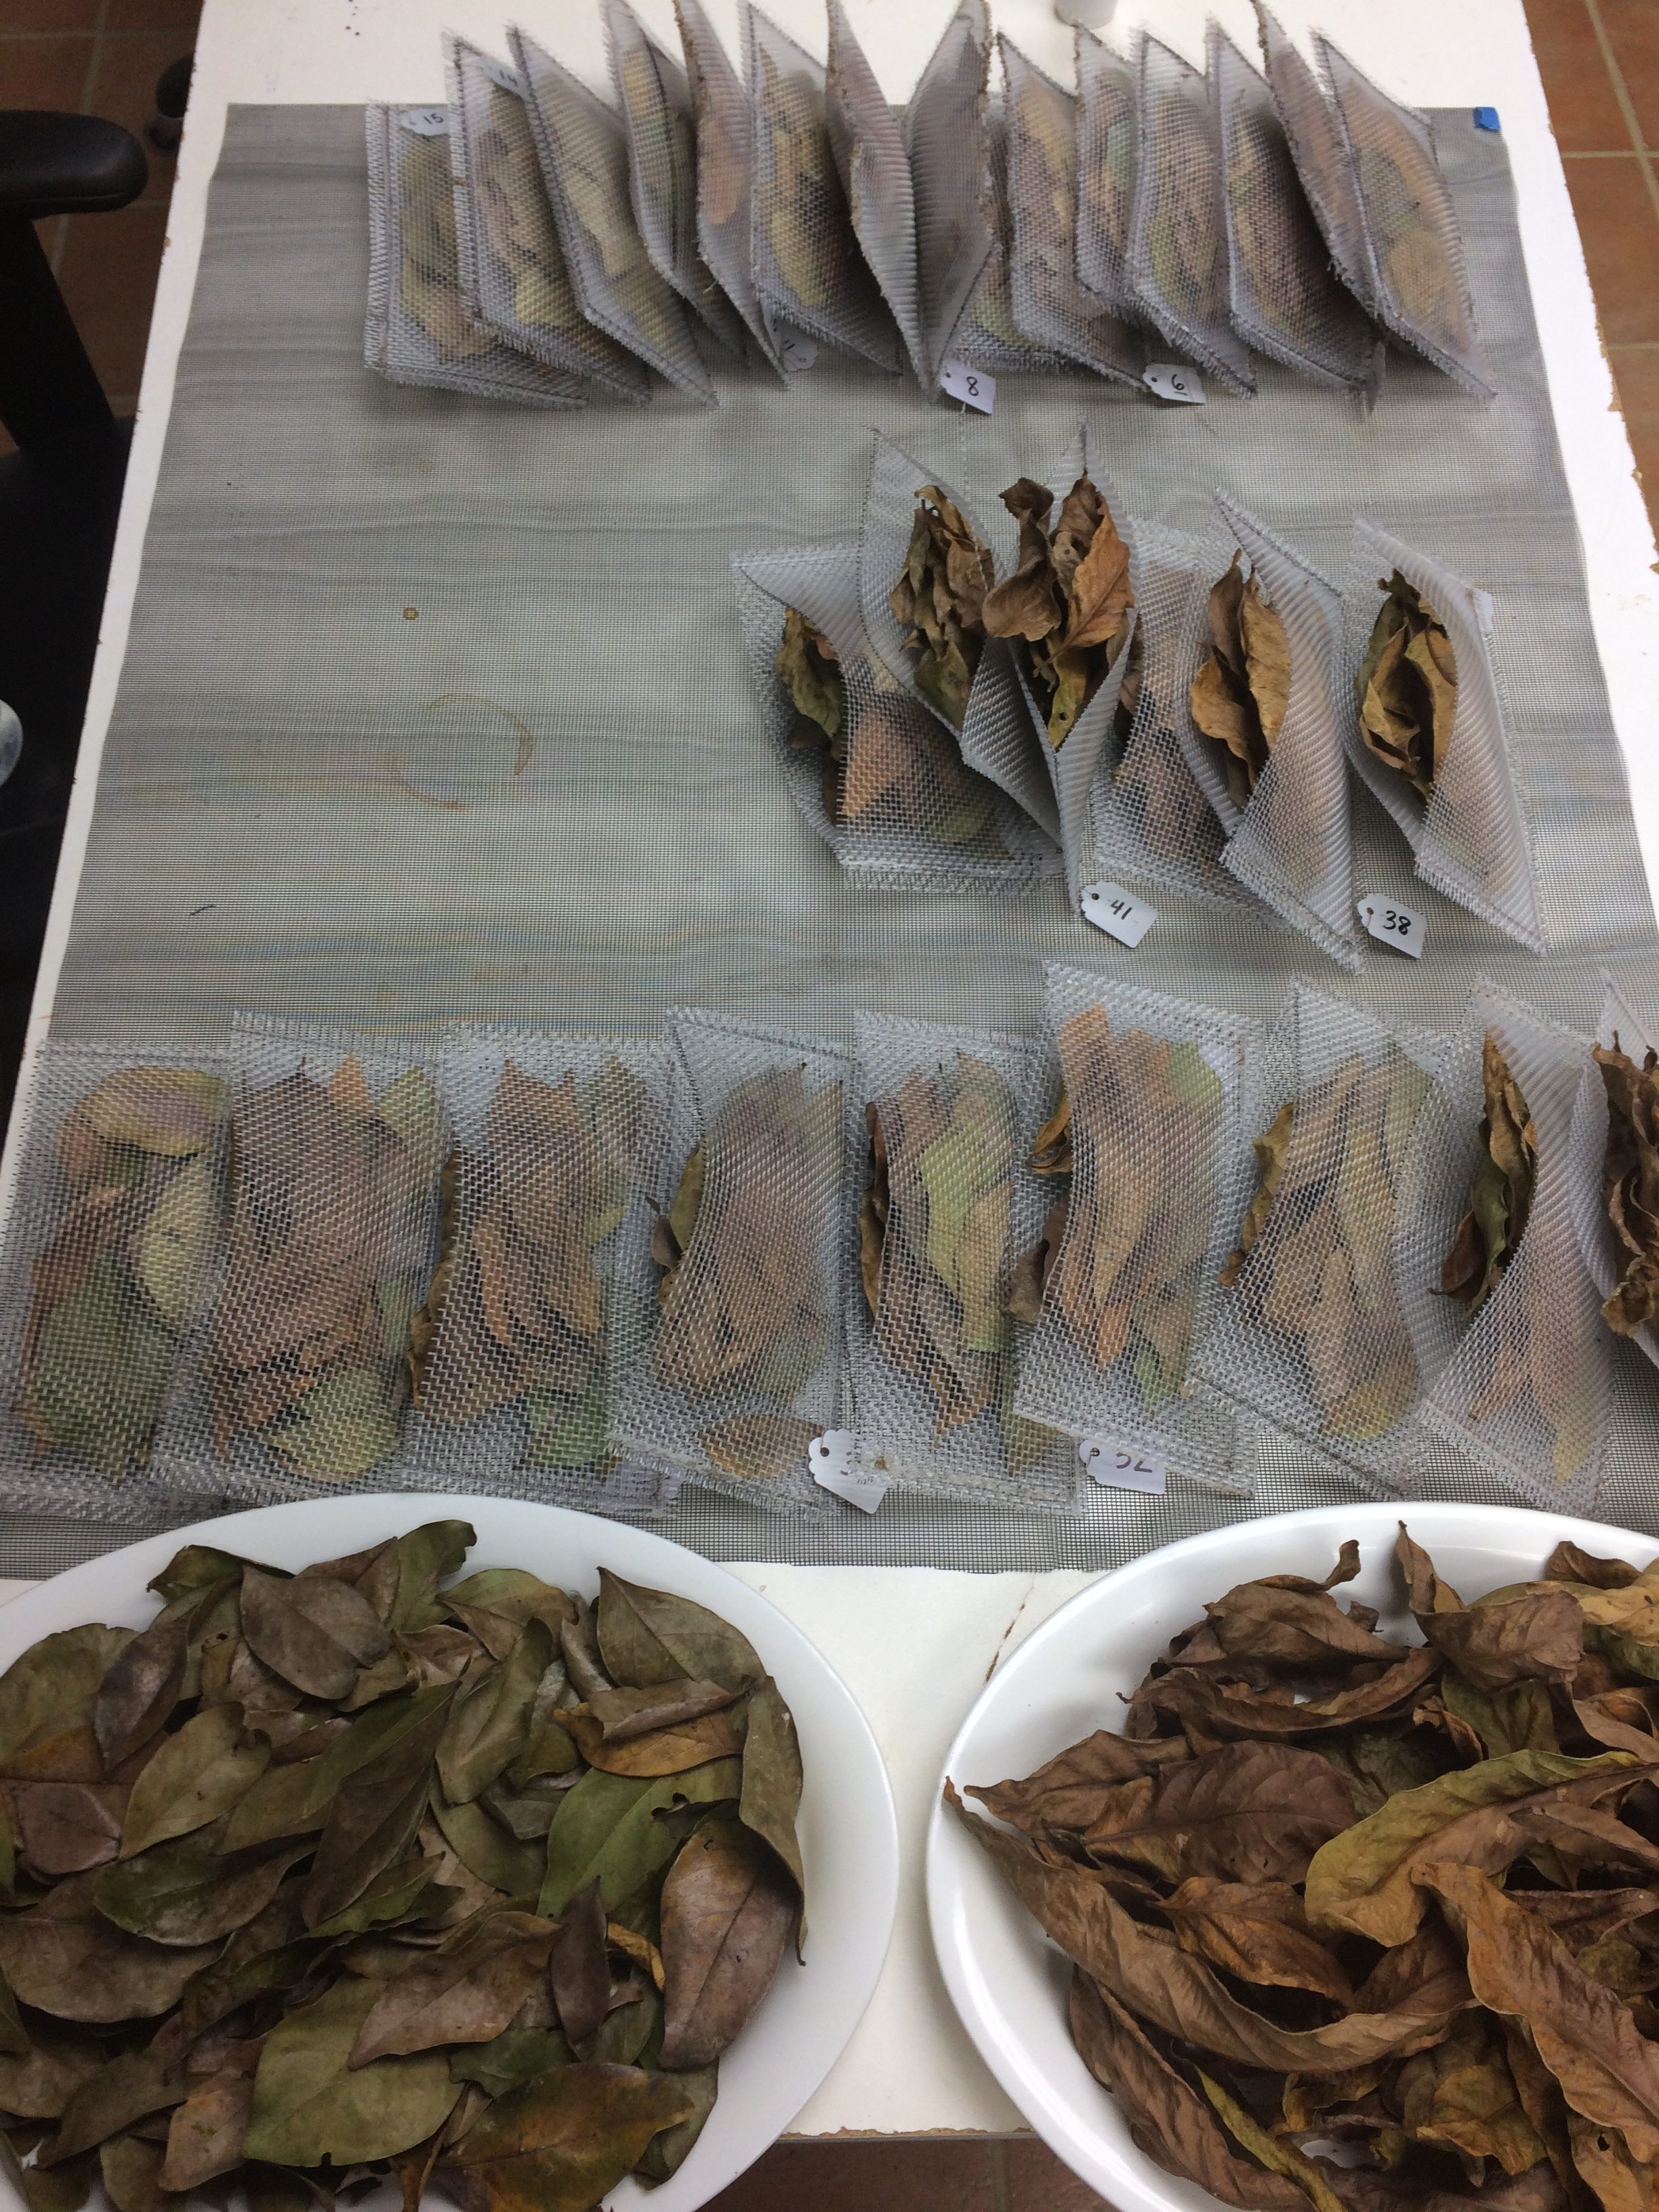 The dried leaf samples were put in mesh bags and numbered before being returned to the warming plots. Credit: Stephanie Roe.